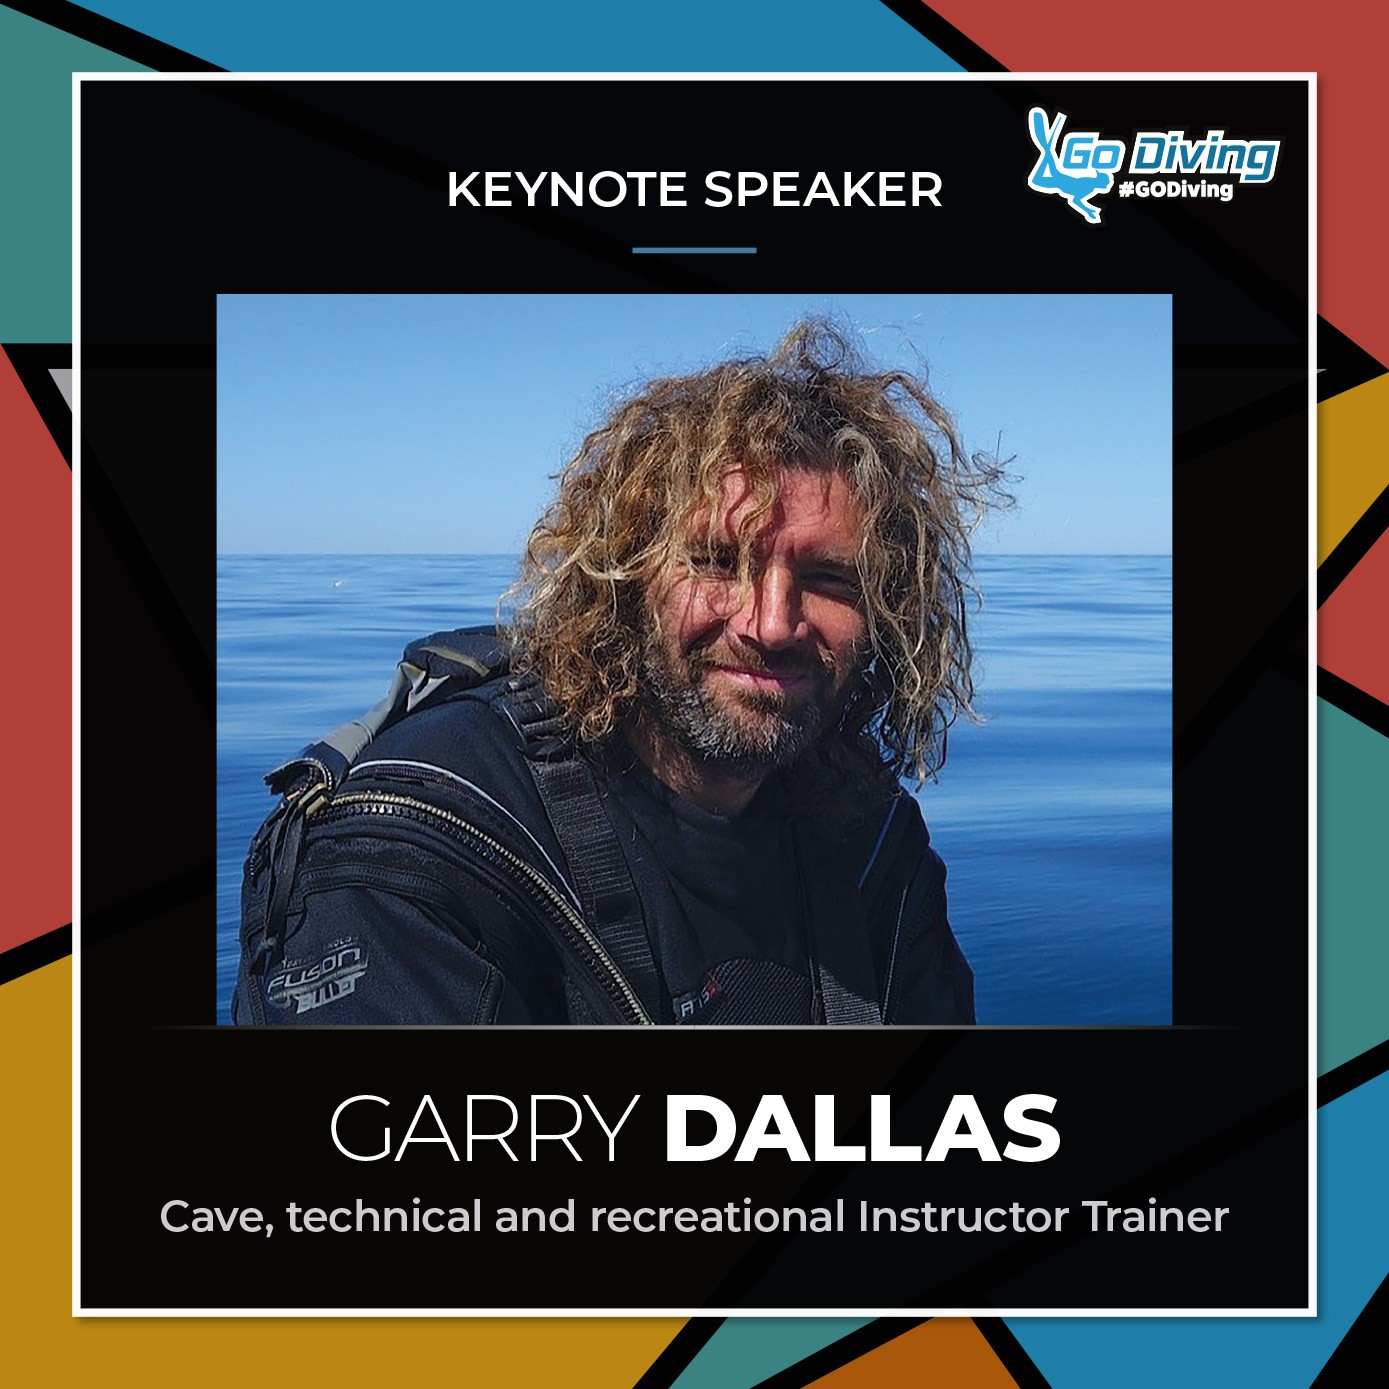 GO Diving Show Speaker Profile - Garry Dallas 1